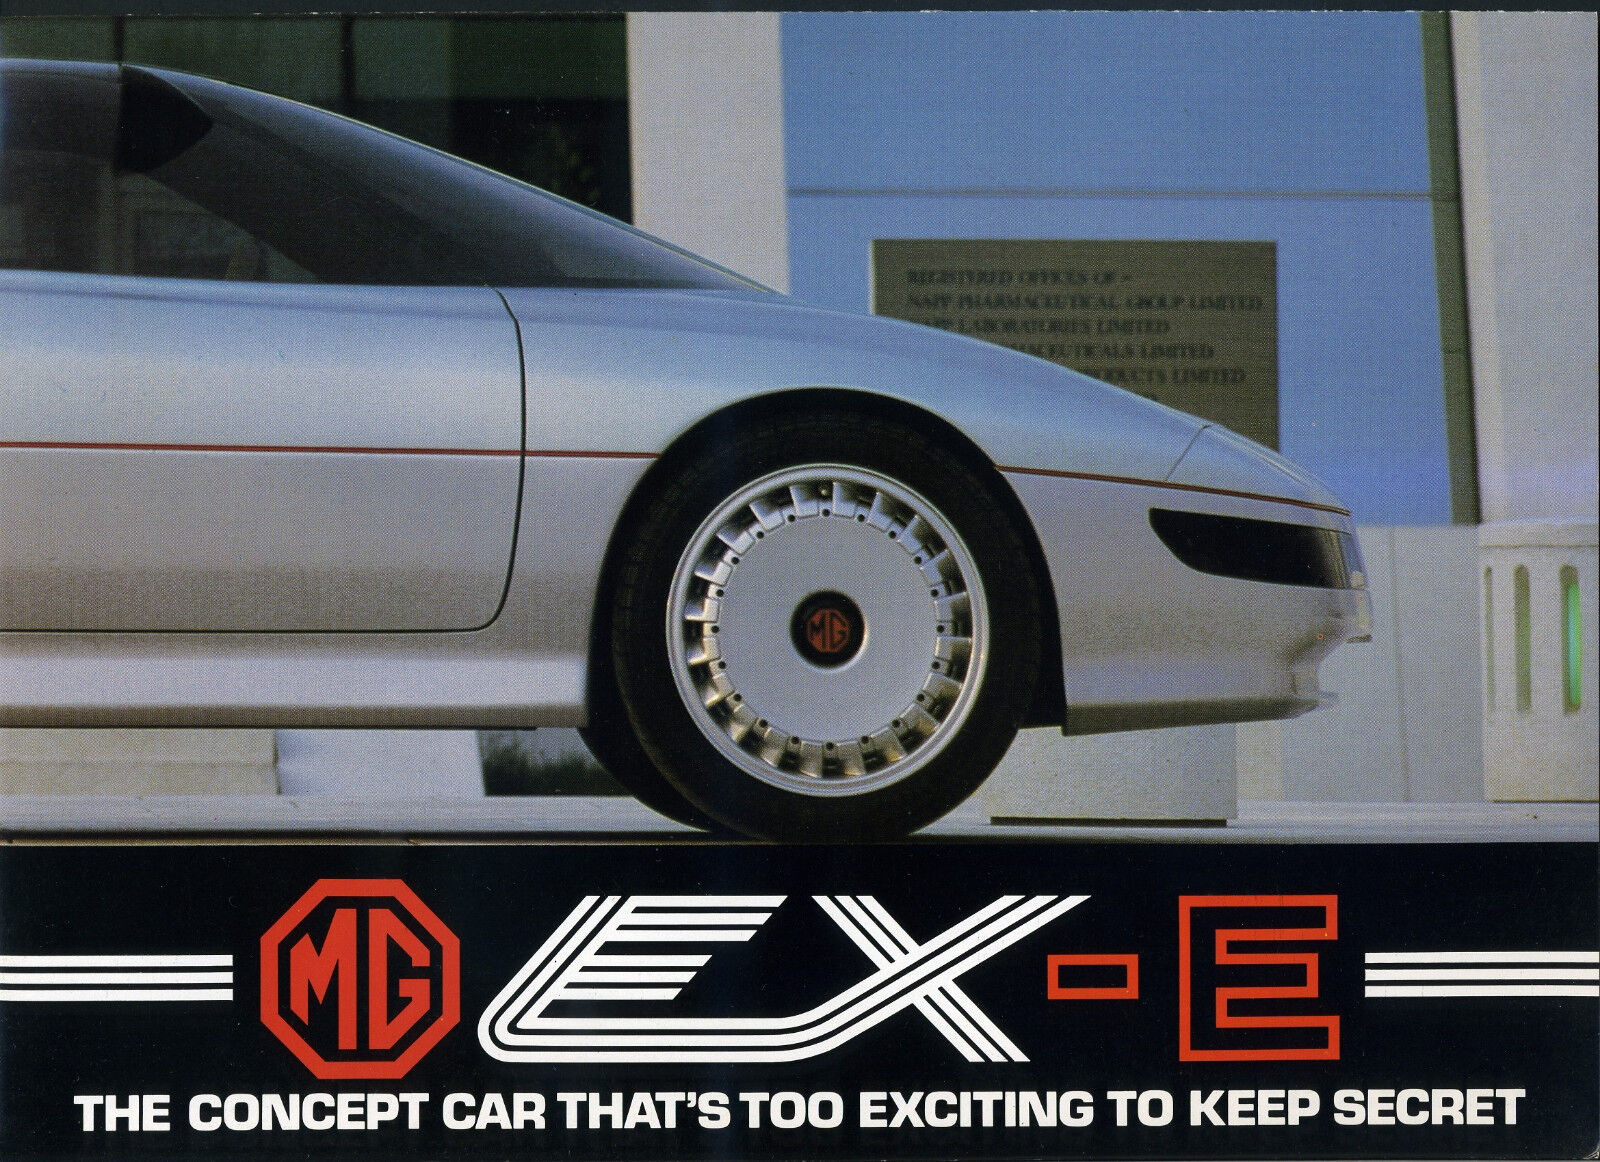 MG EX-E El concepto de coche es también exciting mantener en secreto folleto A4